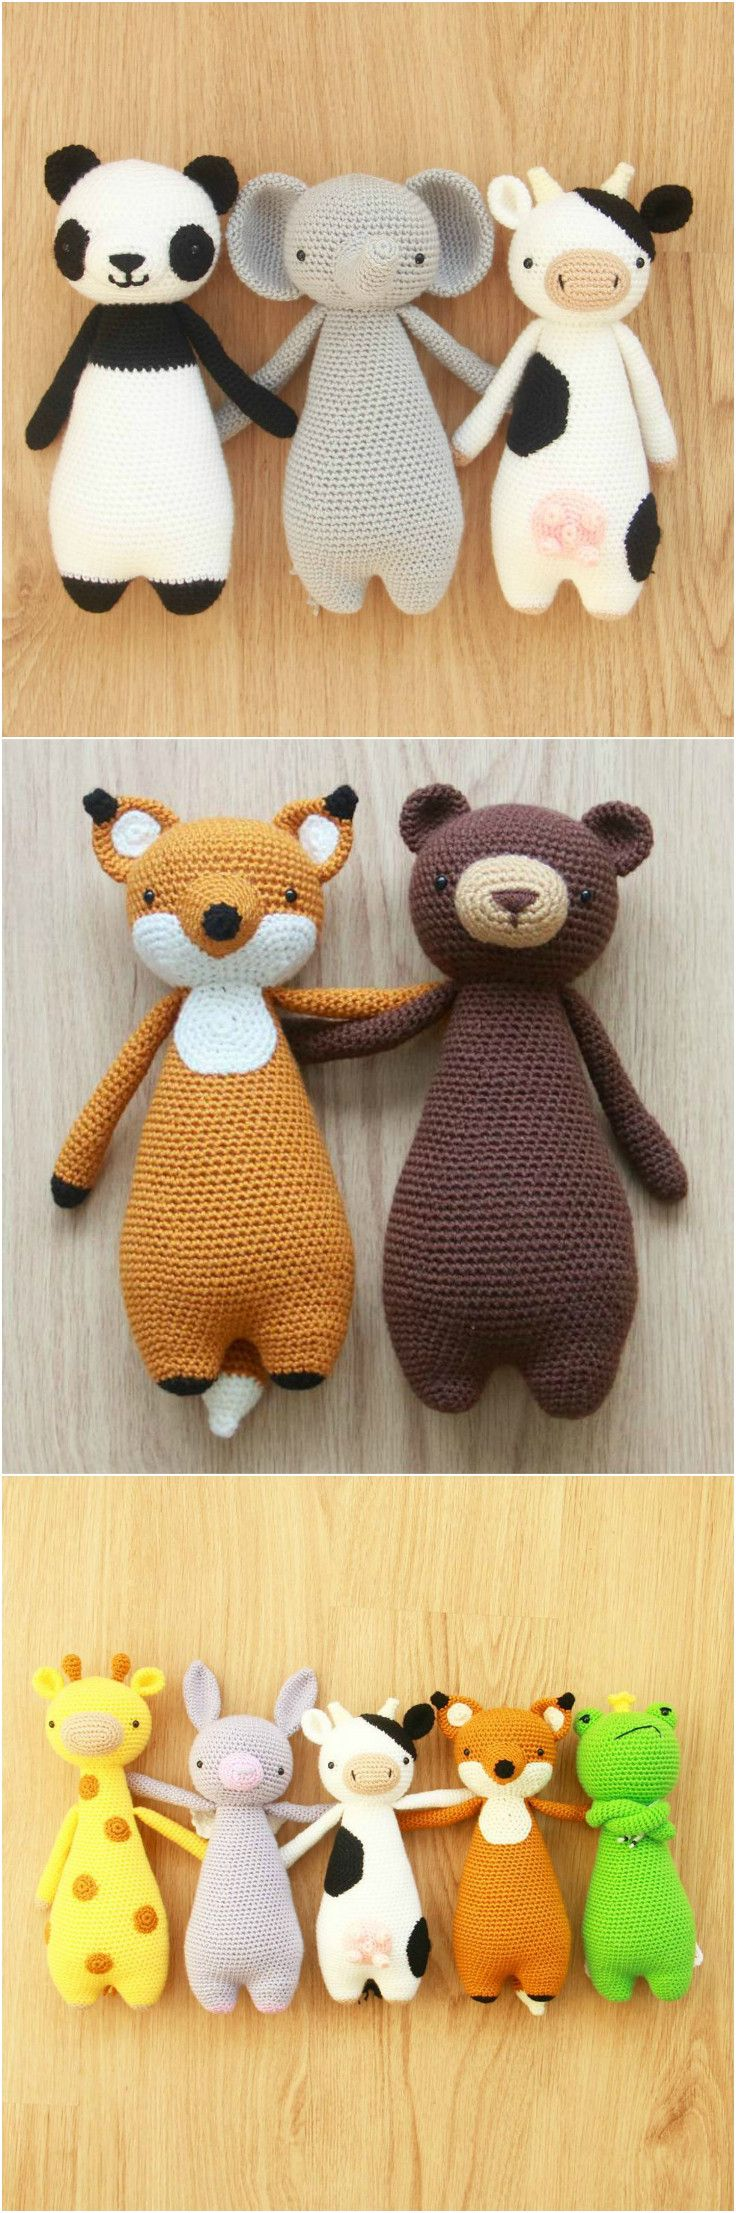 Crochet patterns by Little Bear Crochets: www.littlebearcrochets.com ❤️ #littlebearcrochets #amigurumi #knitteddollpatterns